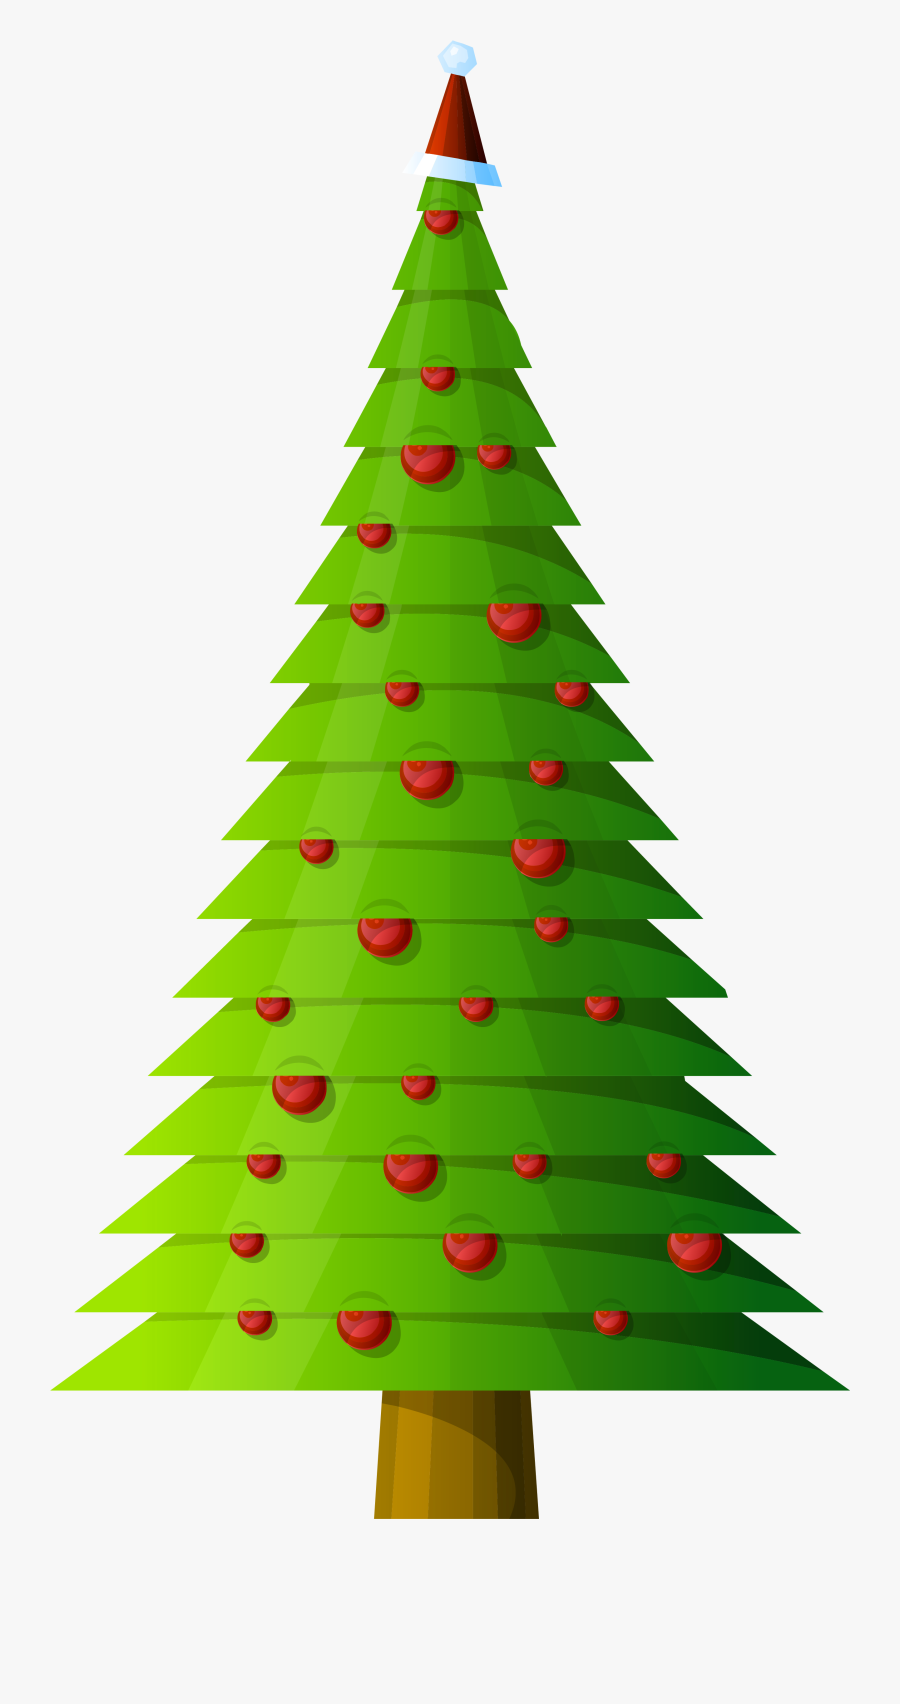 Christmas Tree Modern Style Transparent Png Clipart - Royalty Free Christmas Trees, Transparent Clipart